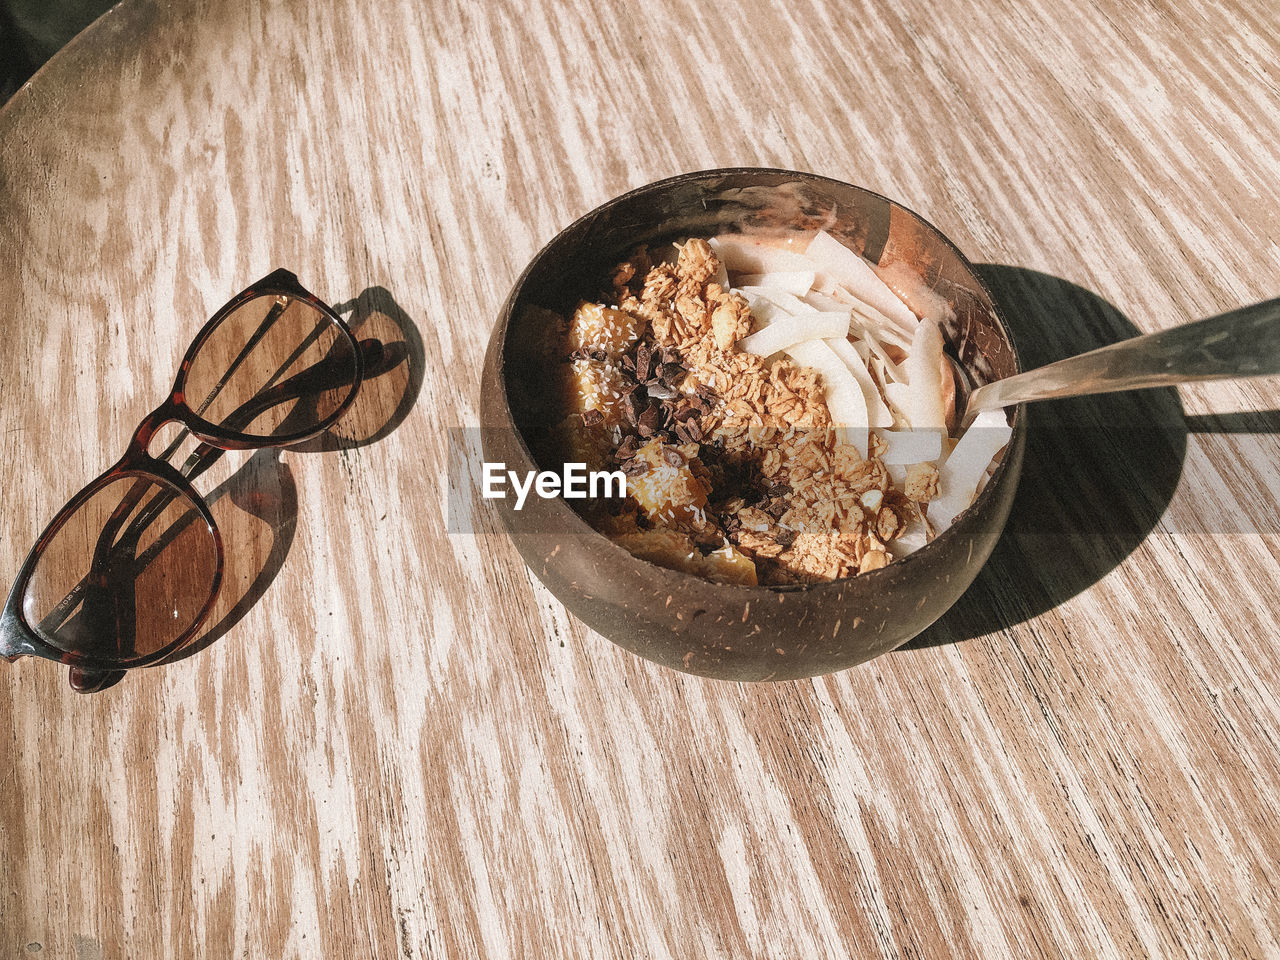 food and drink, food, table, spoon, wood - material, still life, kitchen utensil, eating utensil, dairy product, freshness, indoors, sweet food, bowl, ice cream, sweet, frozen food, no people, close-up, frozen, high angle view, breakfast, temptation